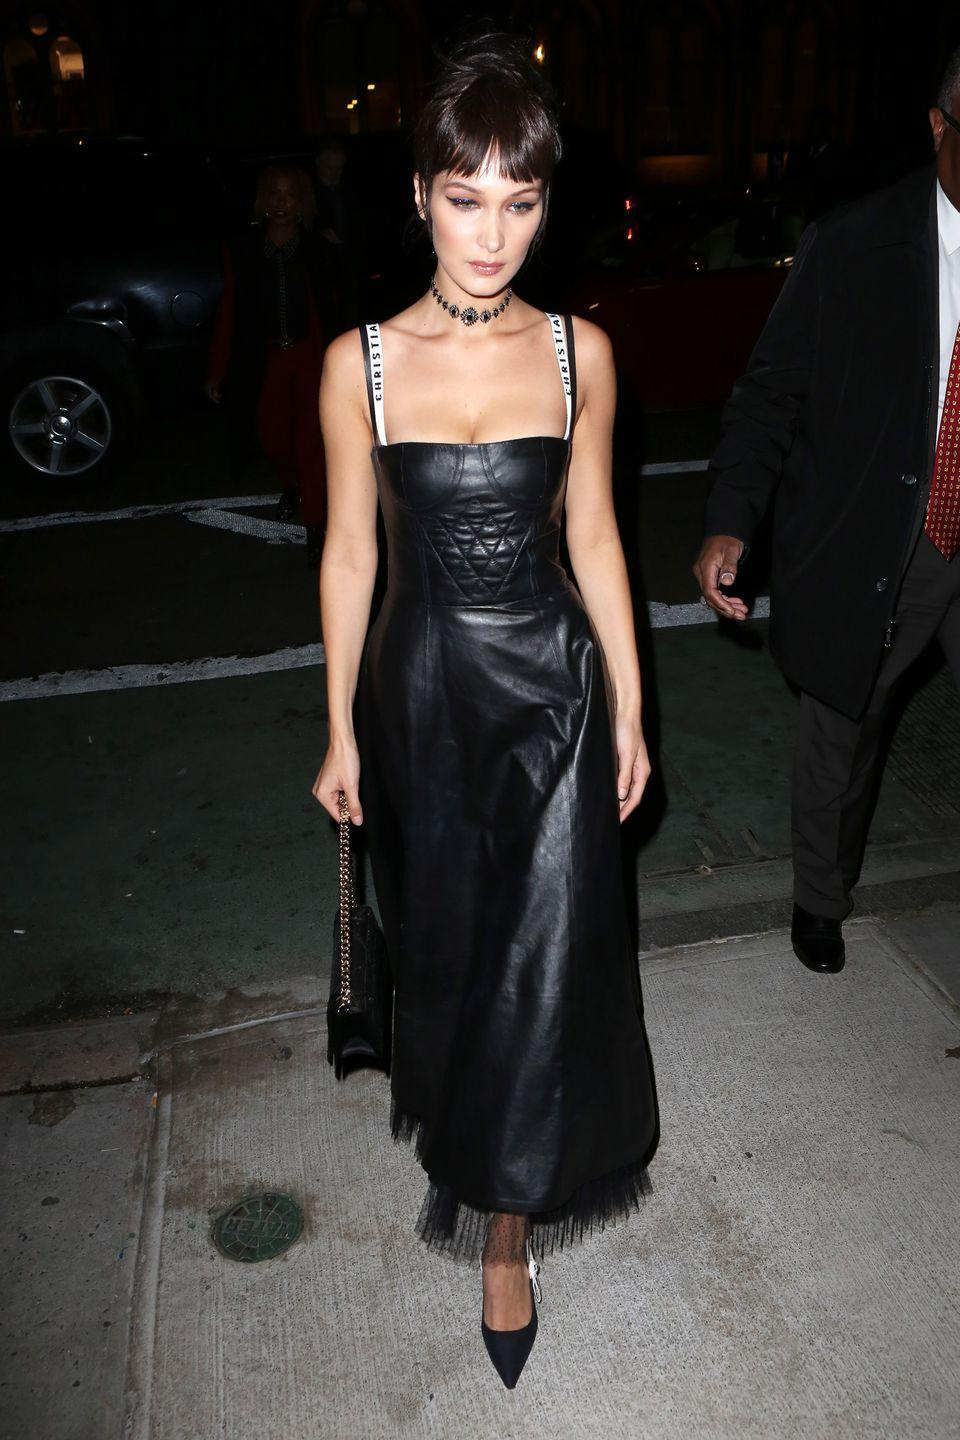 """<p>In a leather Dior Spring 2017 dress with a quilted bustier, """"Christian Dior"""" straps and tulle hemline, pointed-toe pumps, chain strap handbag and jeweled choker while out in New York. </p>"""